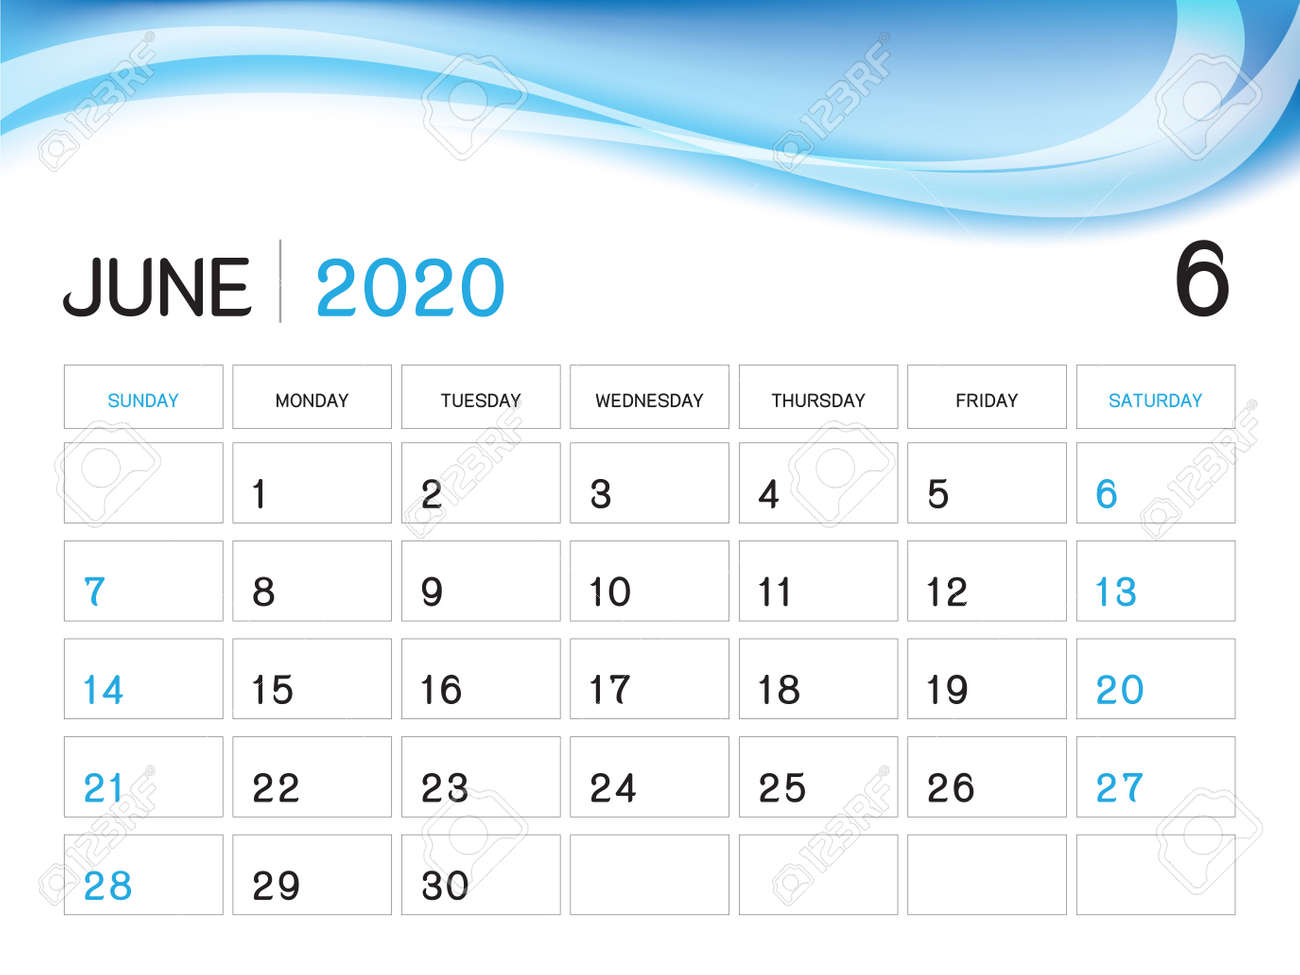 Calendar June 2020.June 2020 Year Template Calendar 2020 Vector Desk Calendar